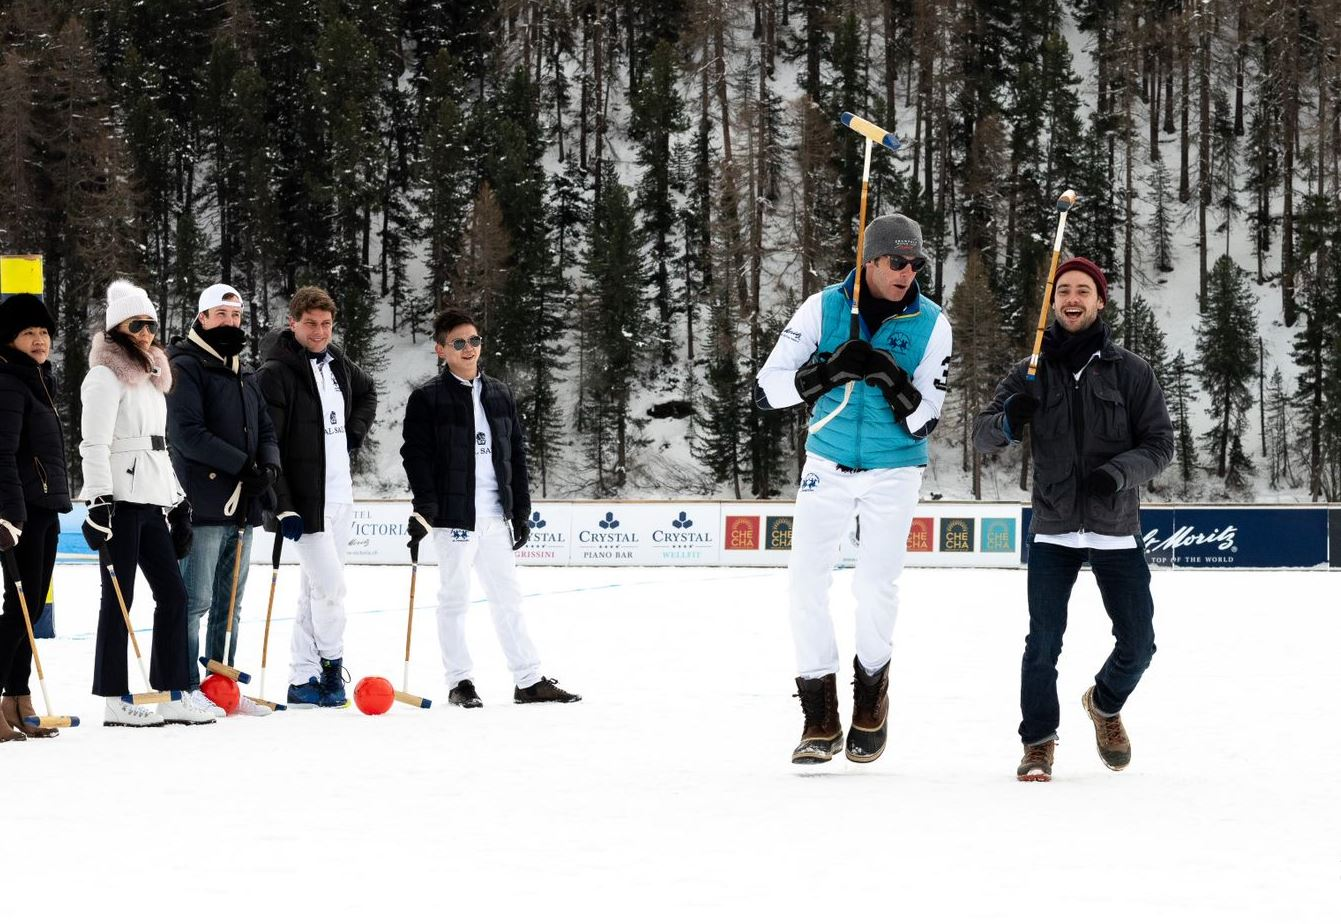 Malcolm Borwick teaches a snow polo clinic at St. Moritz, Switzerland